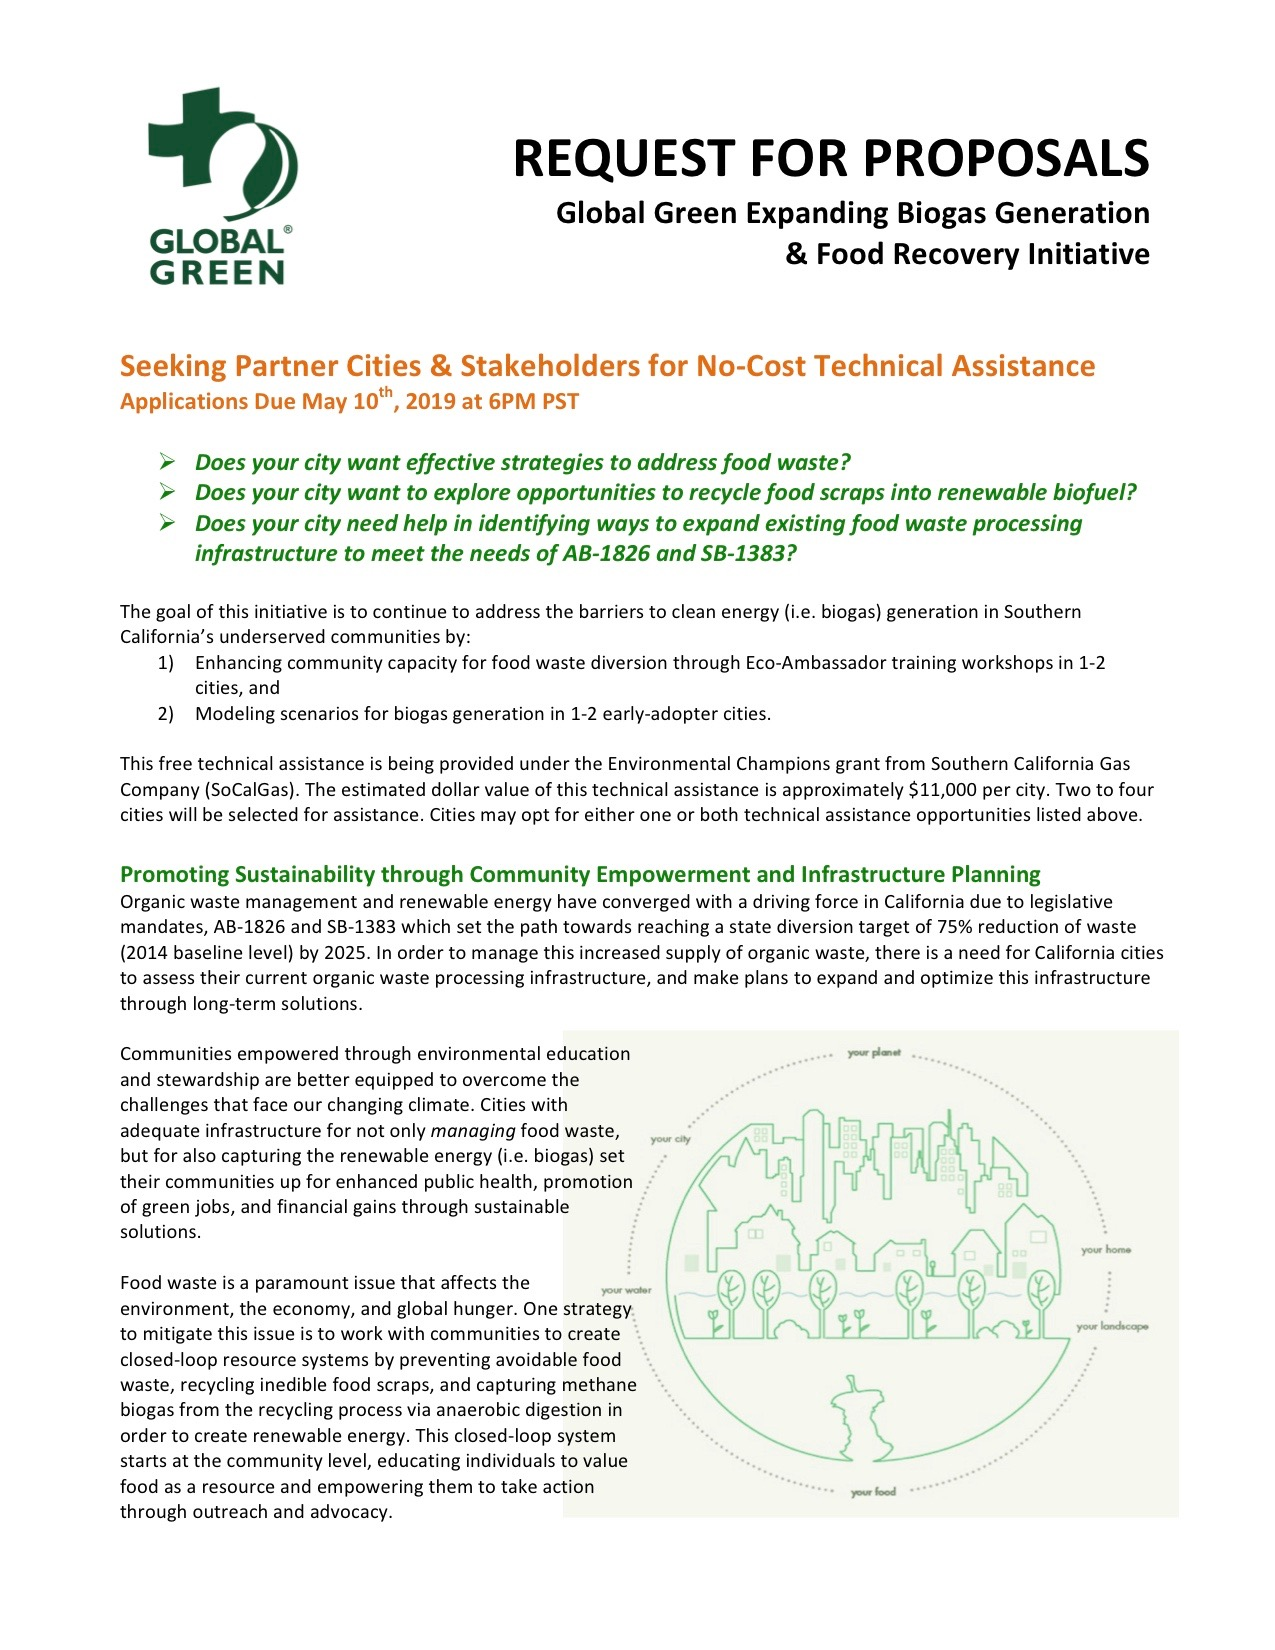 Expanding Biogas Generation & Food Recovery Initiative Request for